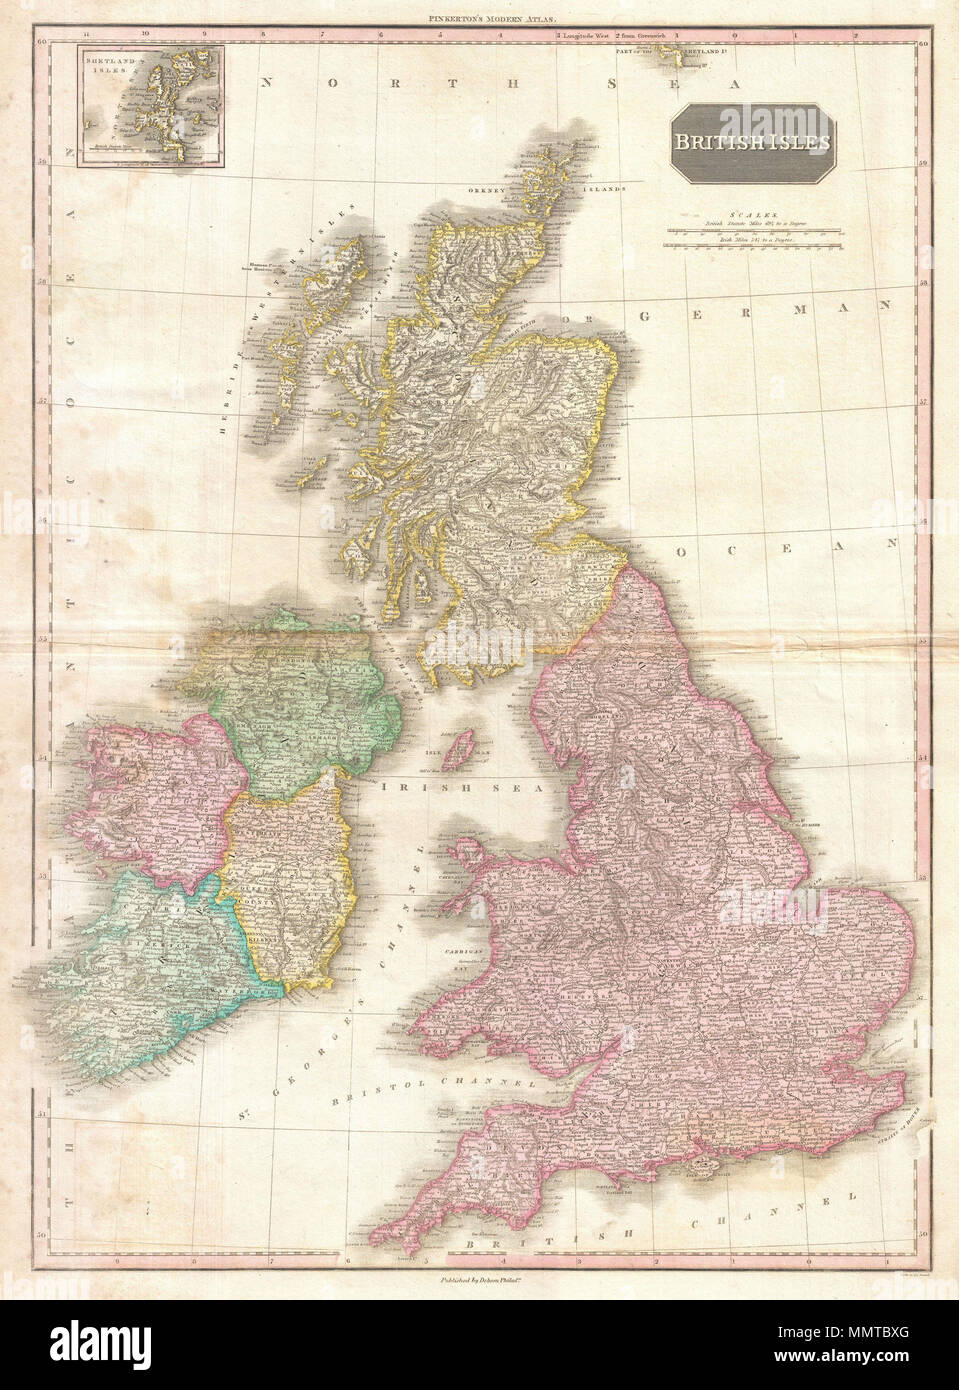 English Pinkerton S Extraordinary 1818 Map Of The British